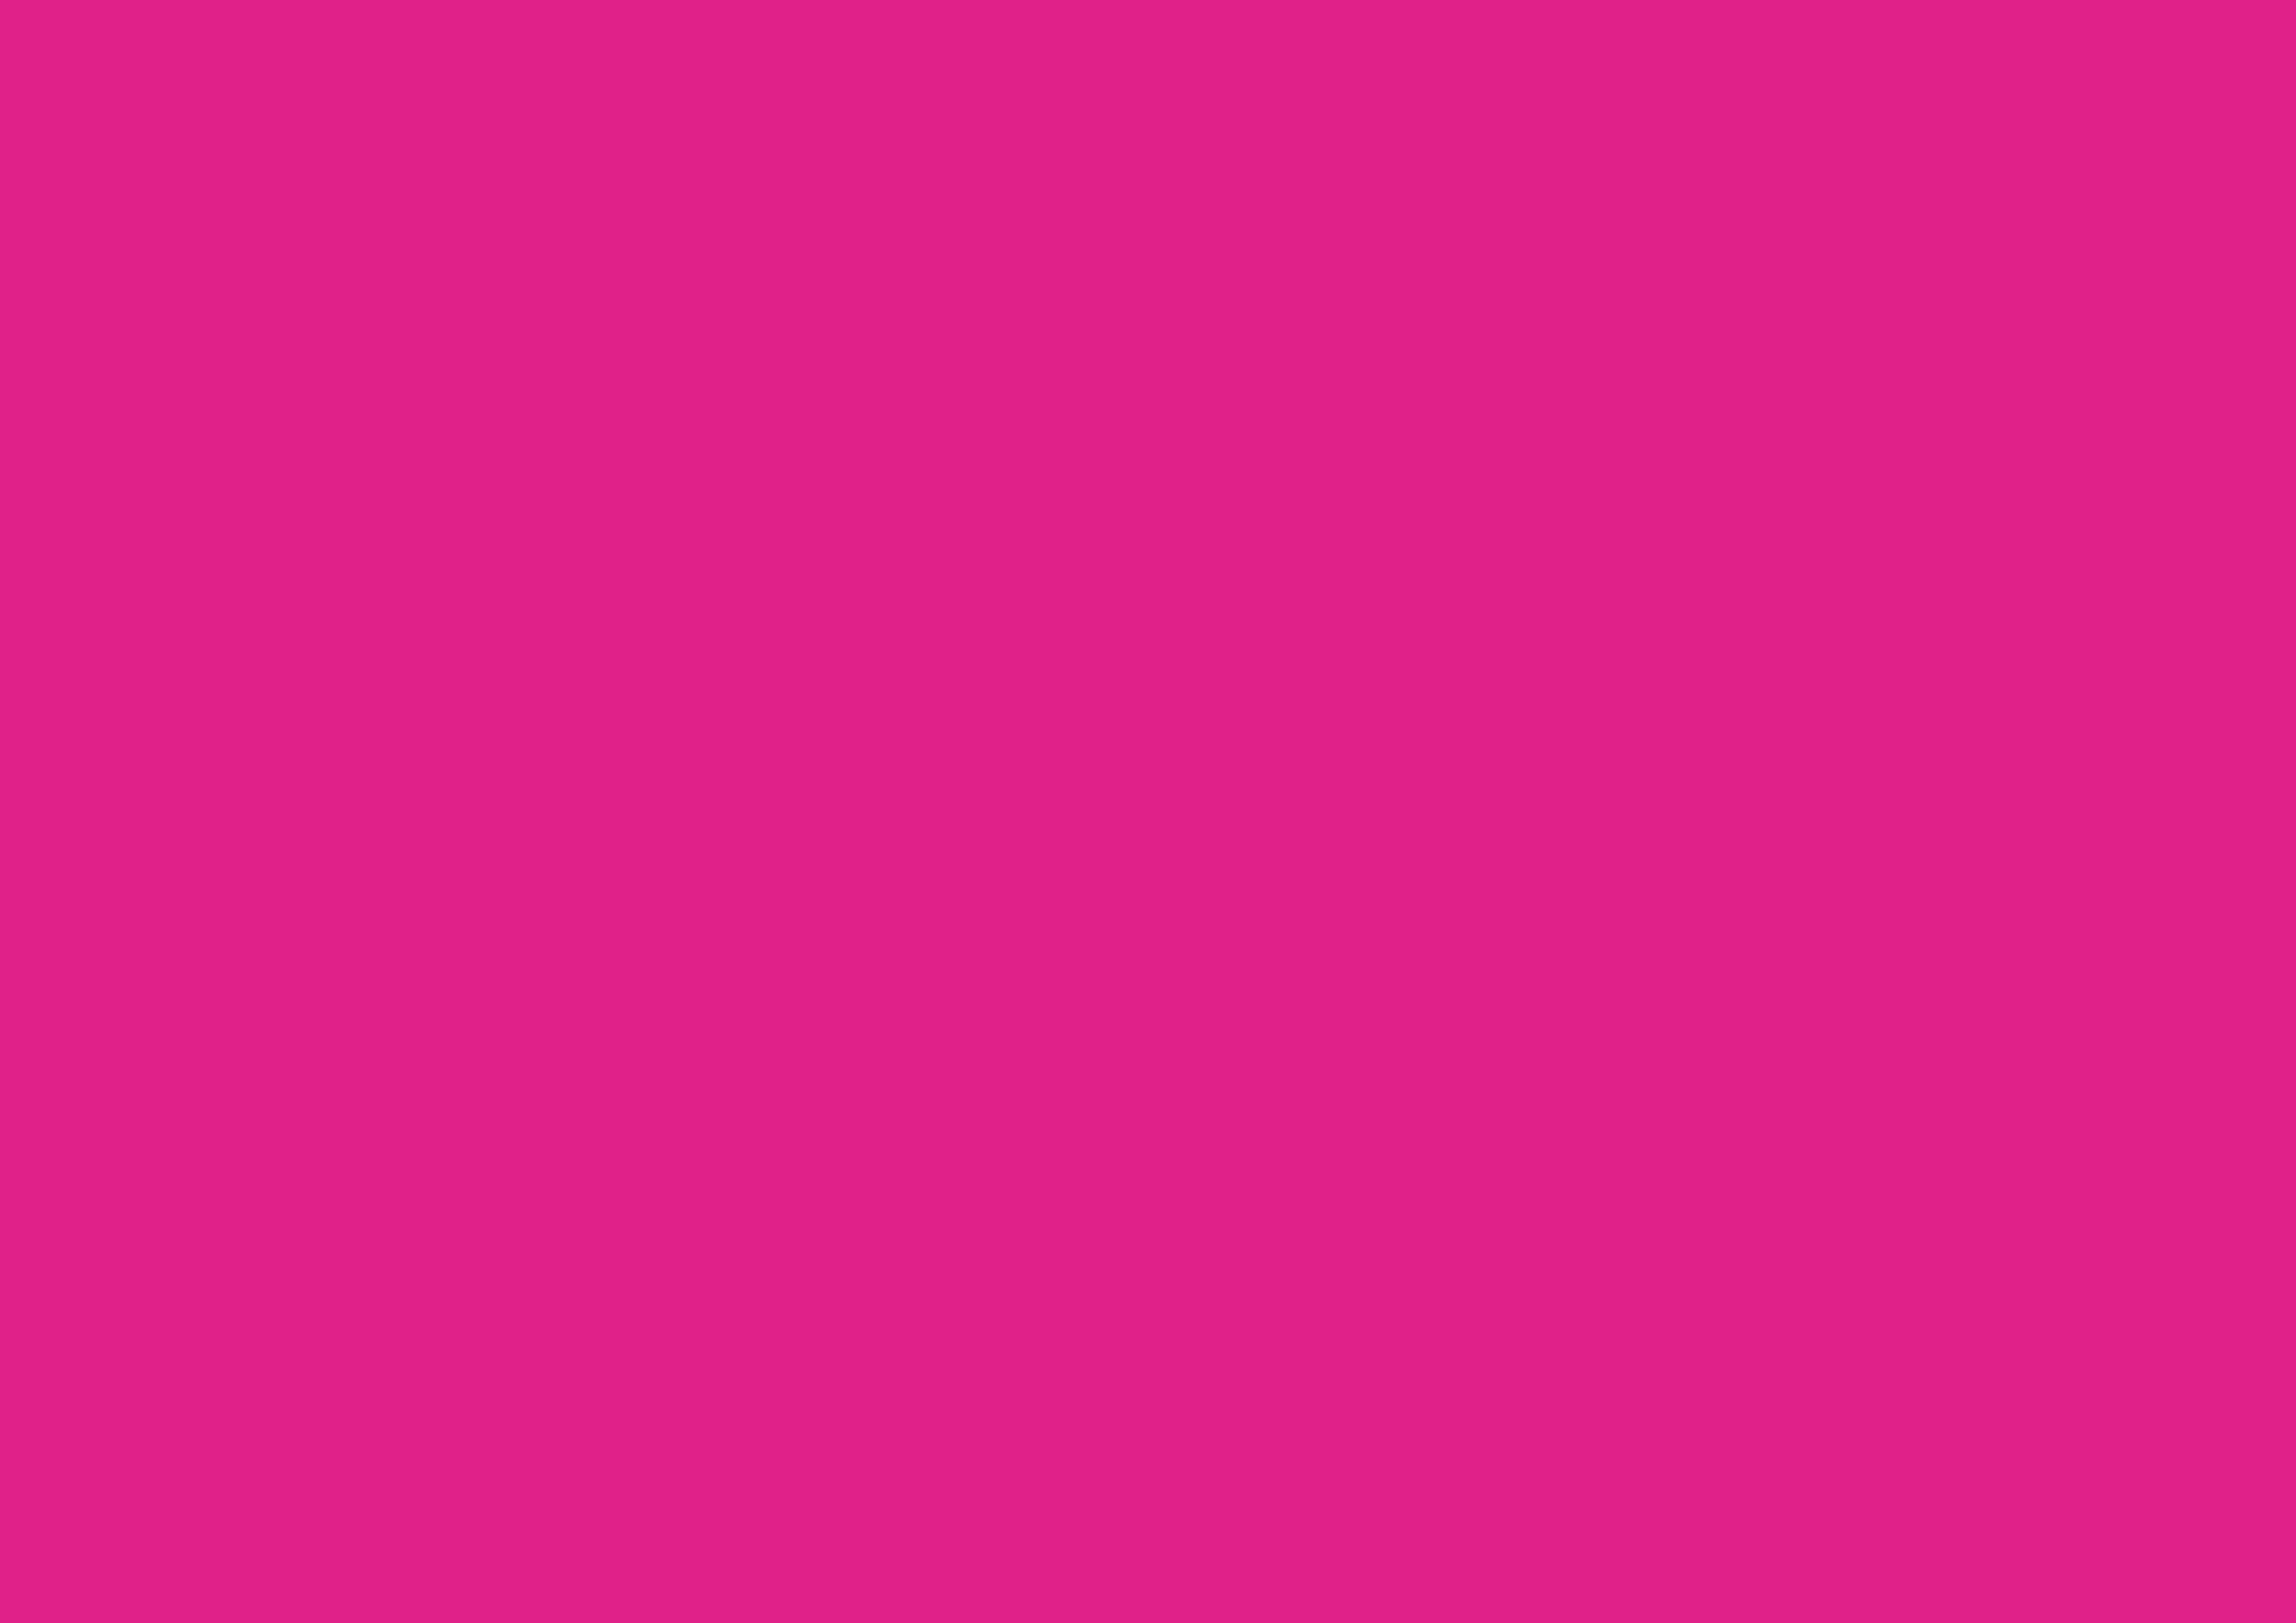 3508x2480 Barbie Pink Solid Color Background